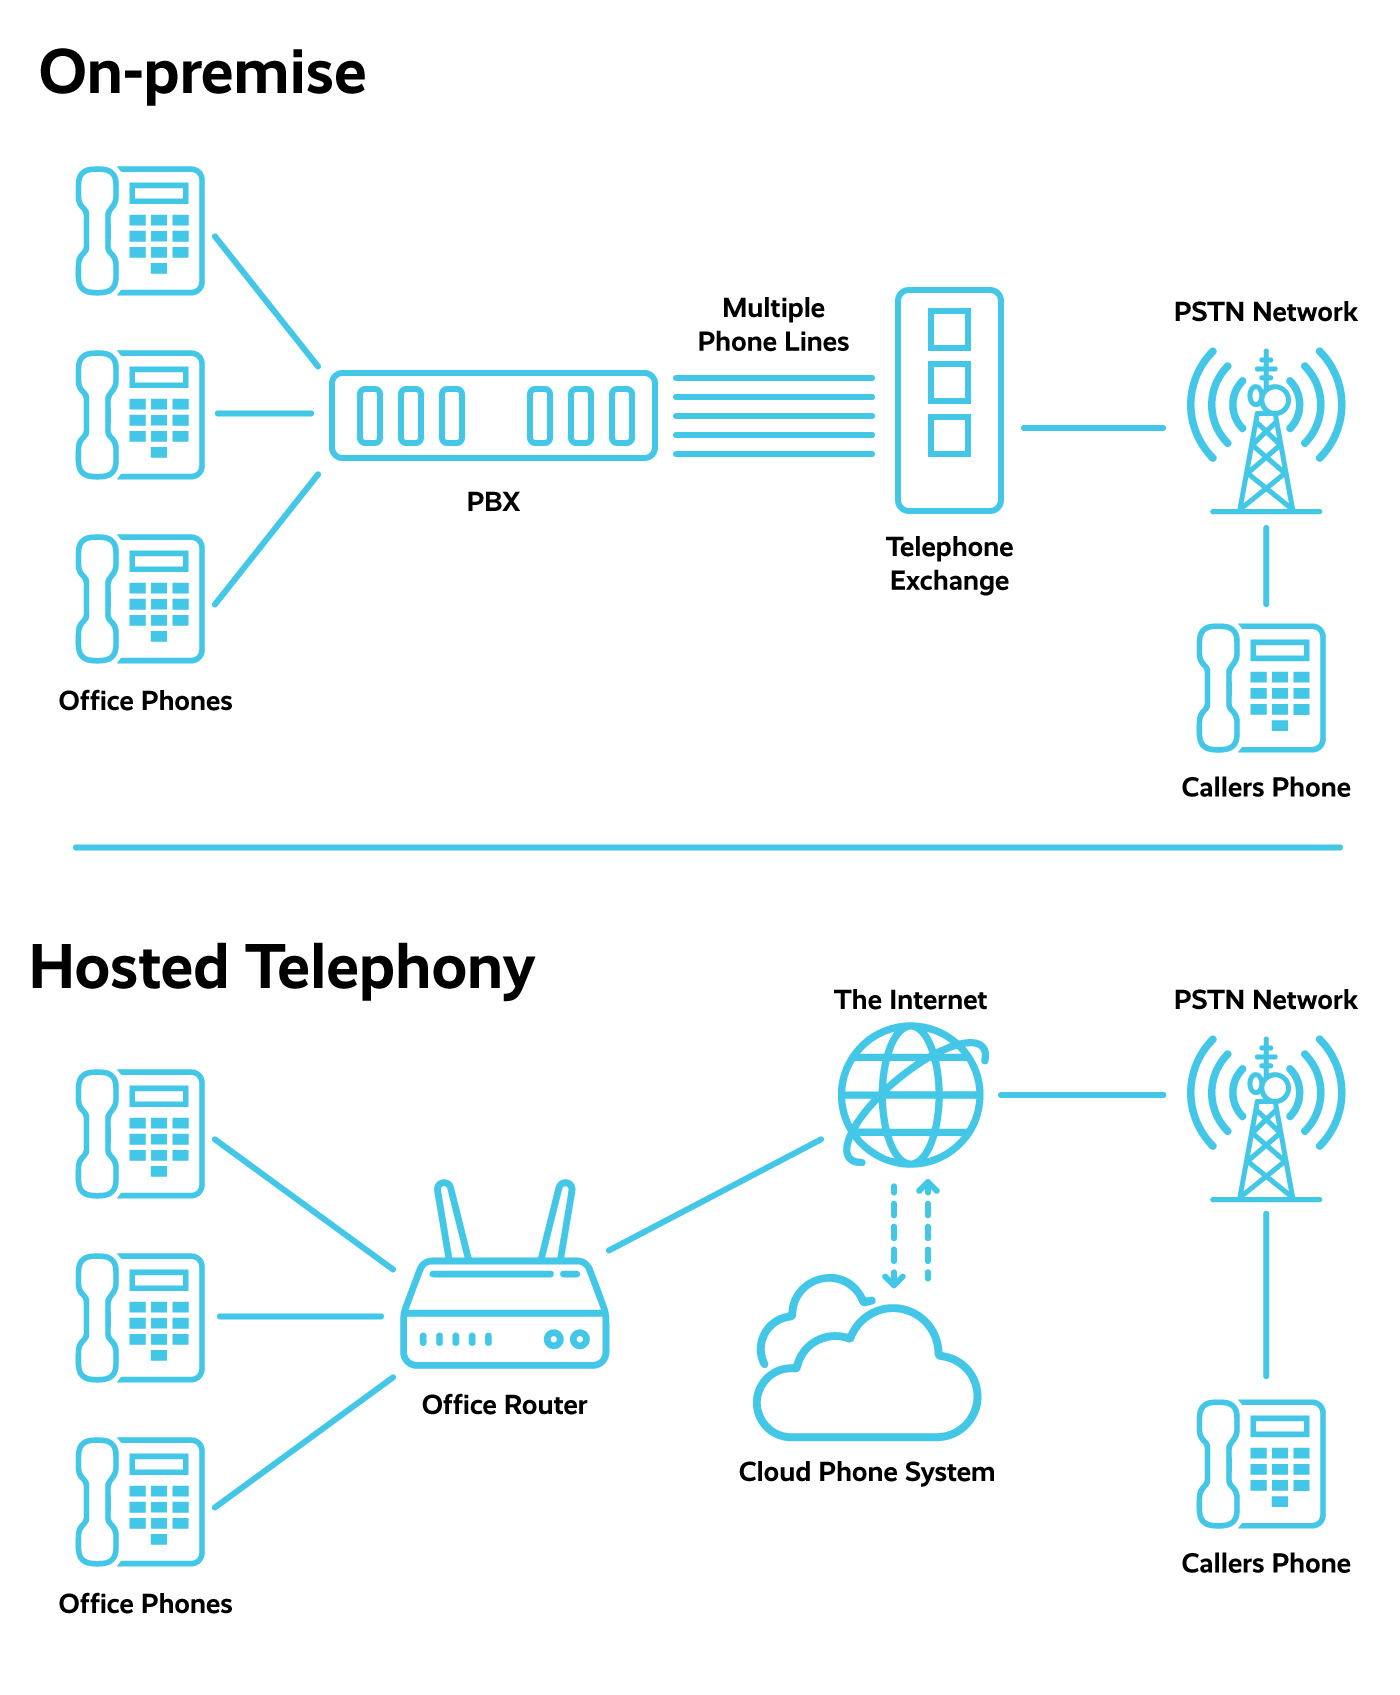 On-premise vs hosted telephony diagram